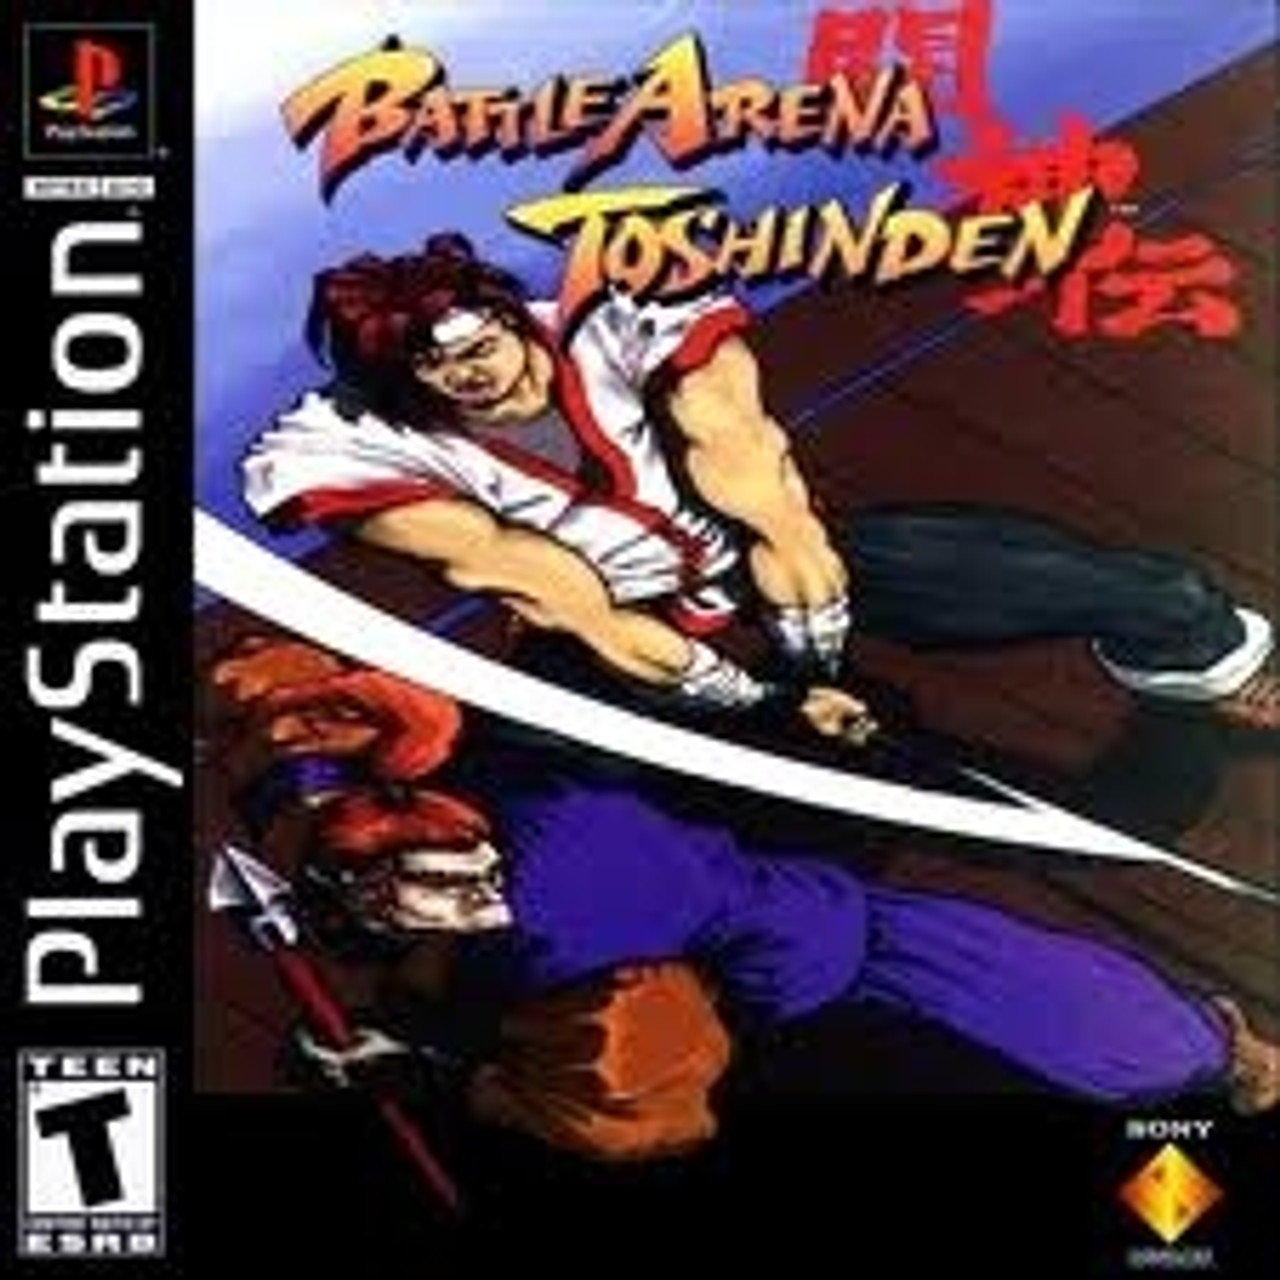 Battle Arena Toshinden Playstation 1 Ps1 Game For Sale Dkoldies